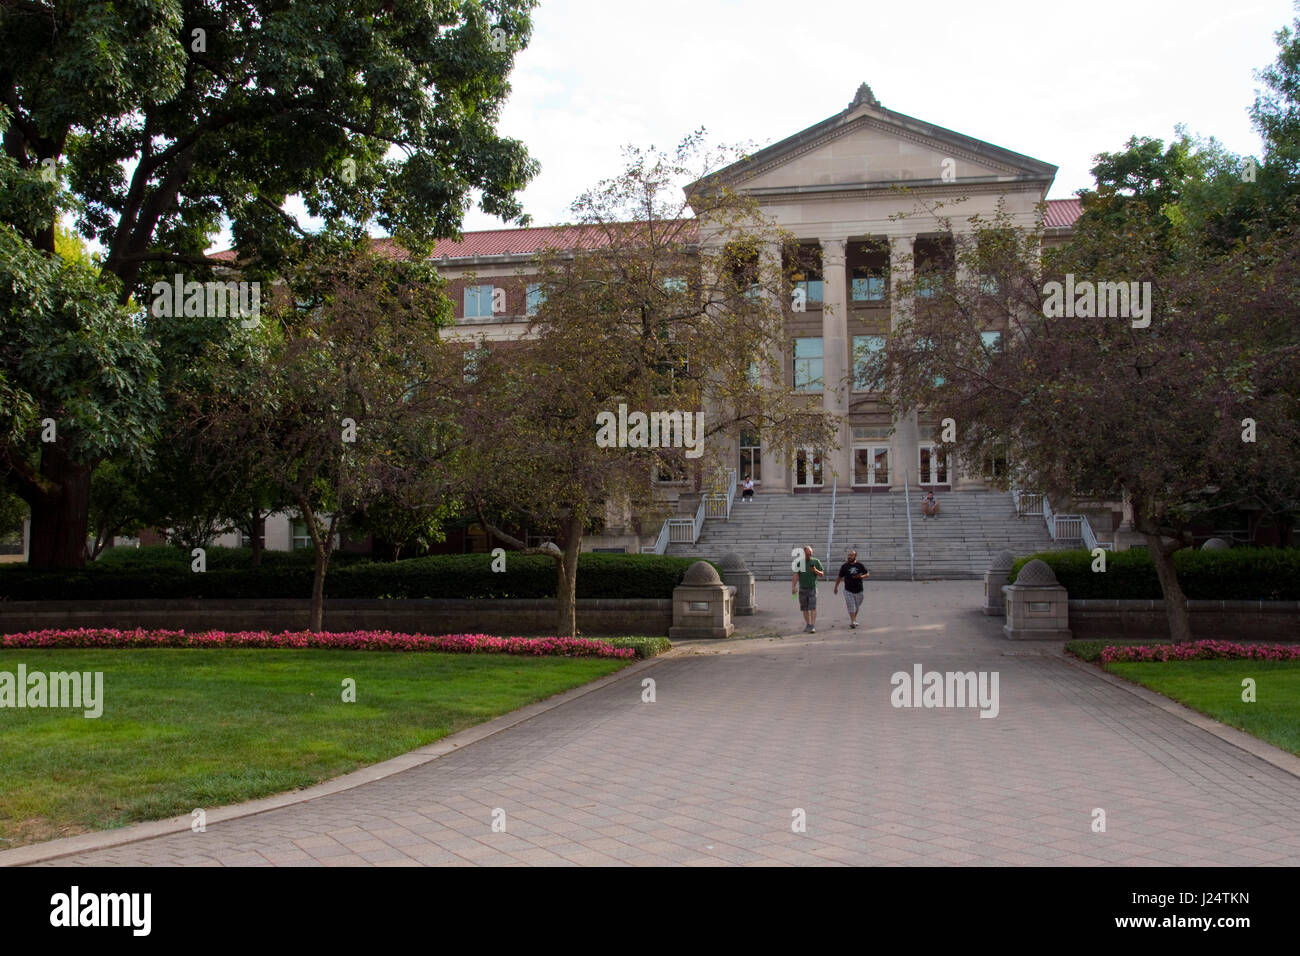 Buildings on the Purdue University campus in West Lafayette, Indiana. - Stock Image